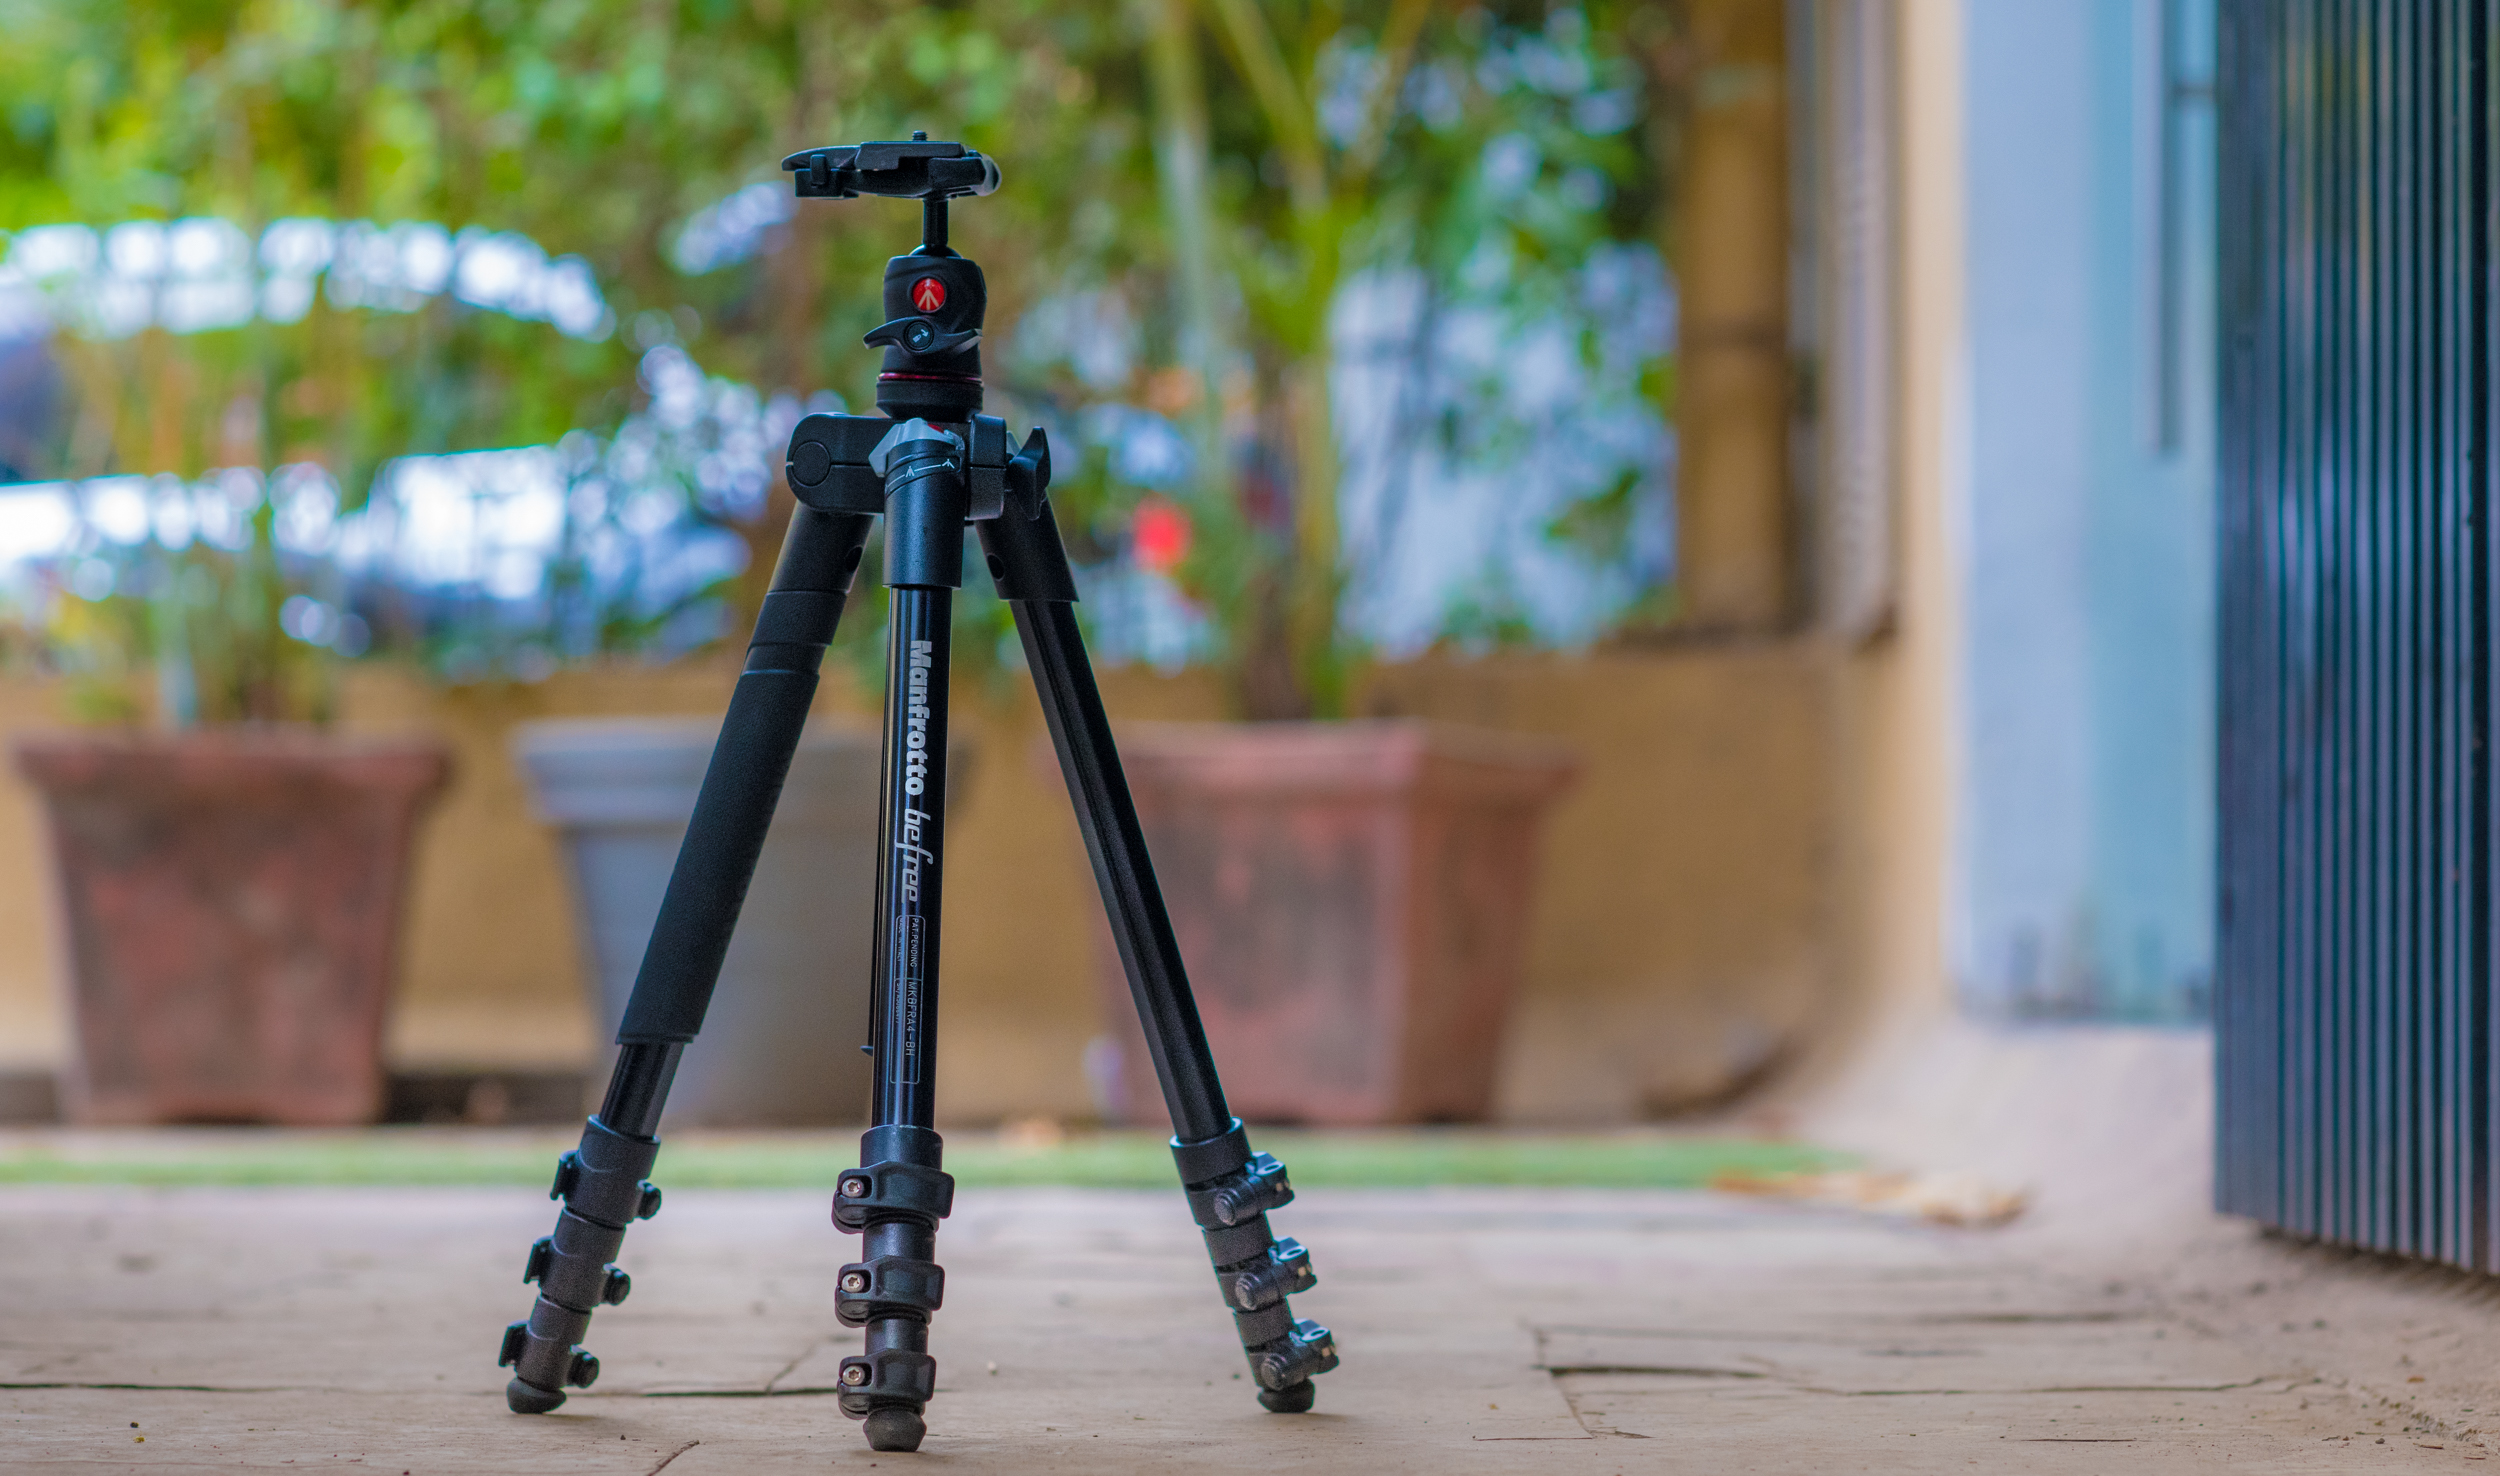 With a tripod, your images will remain level and steady